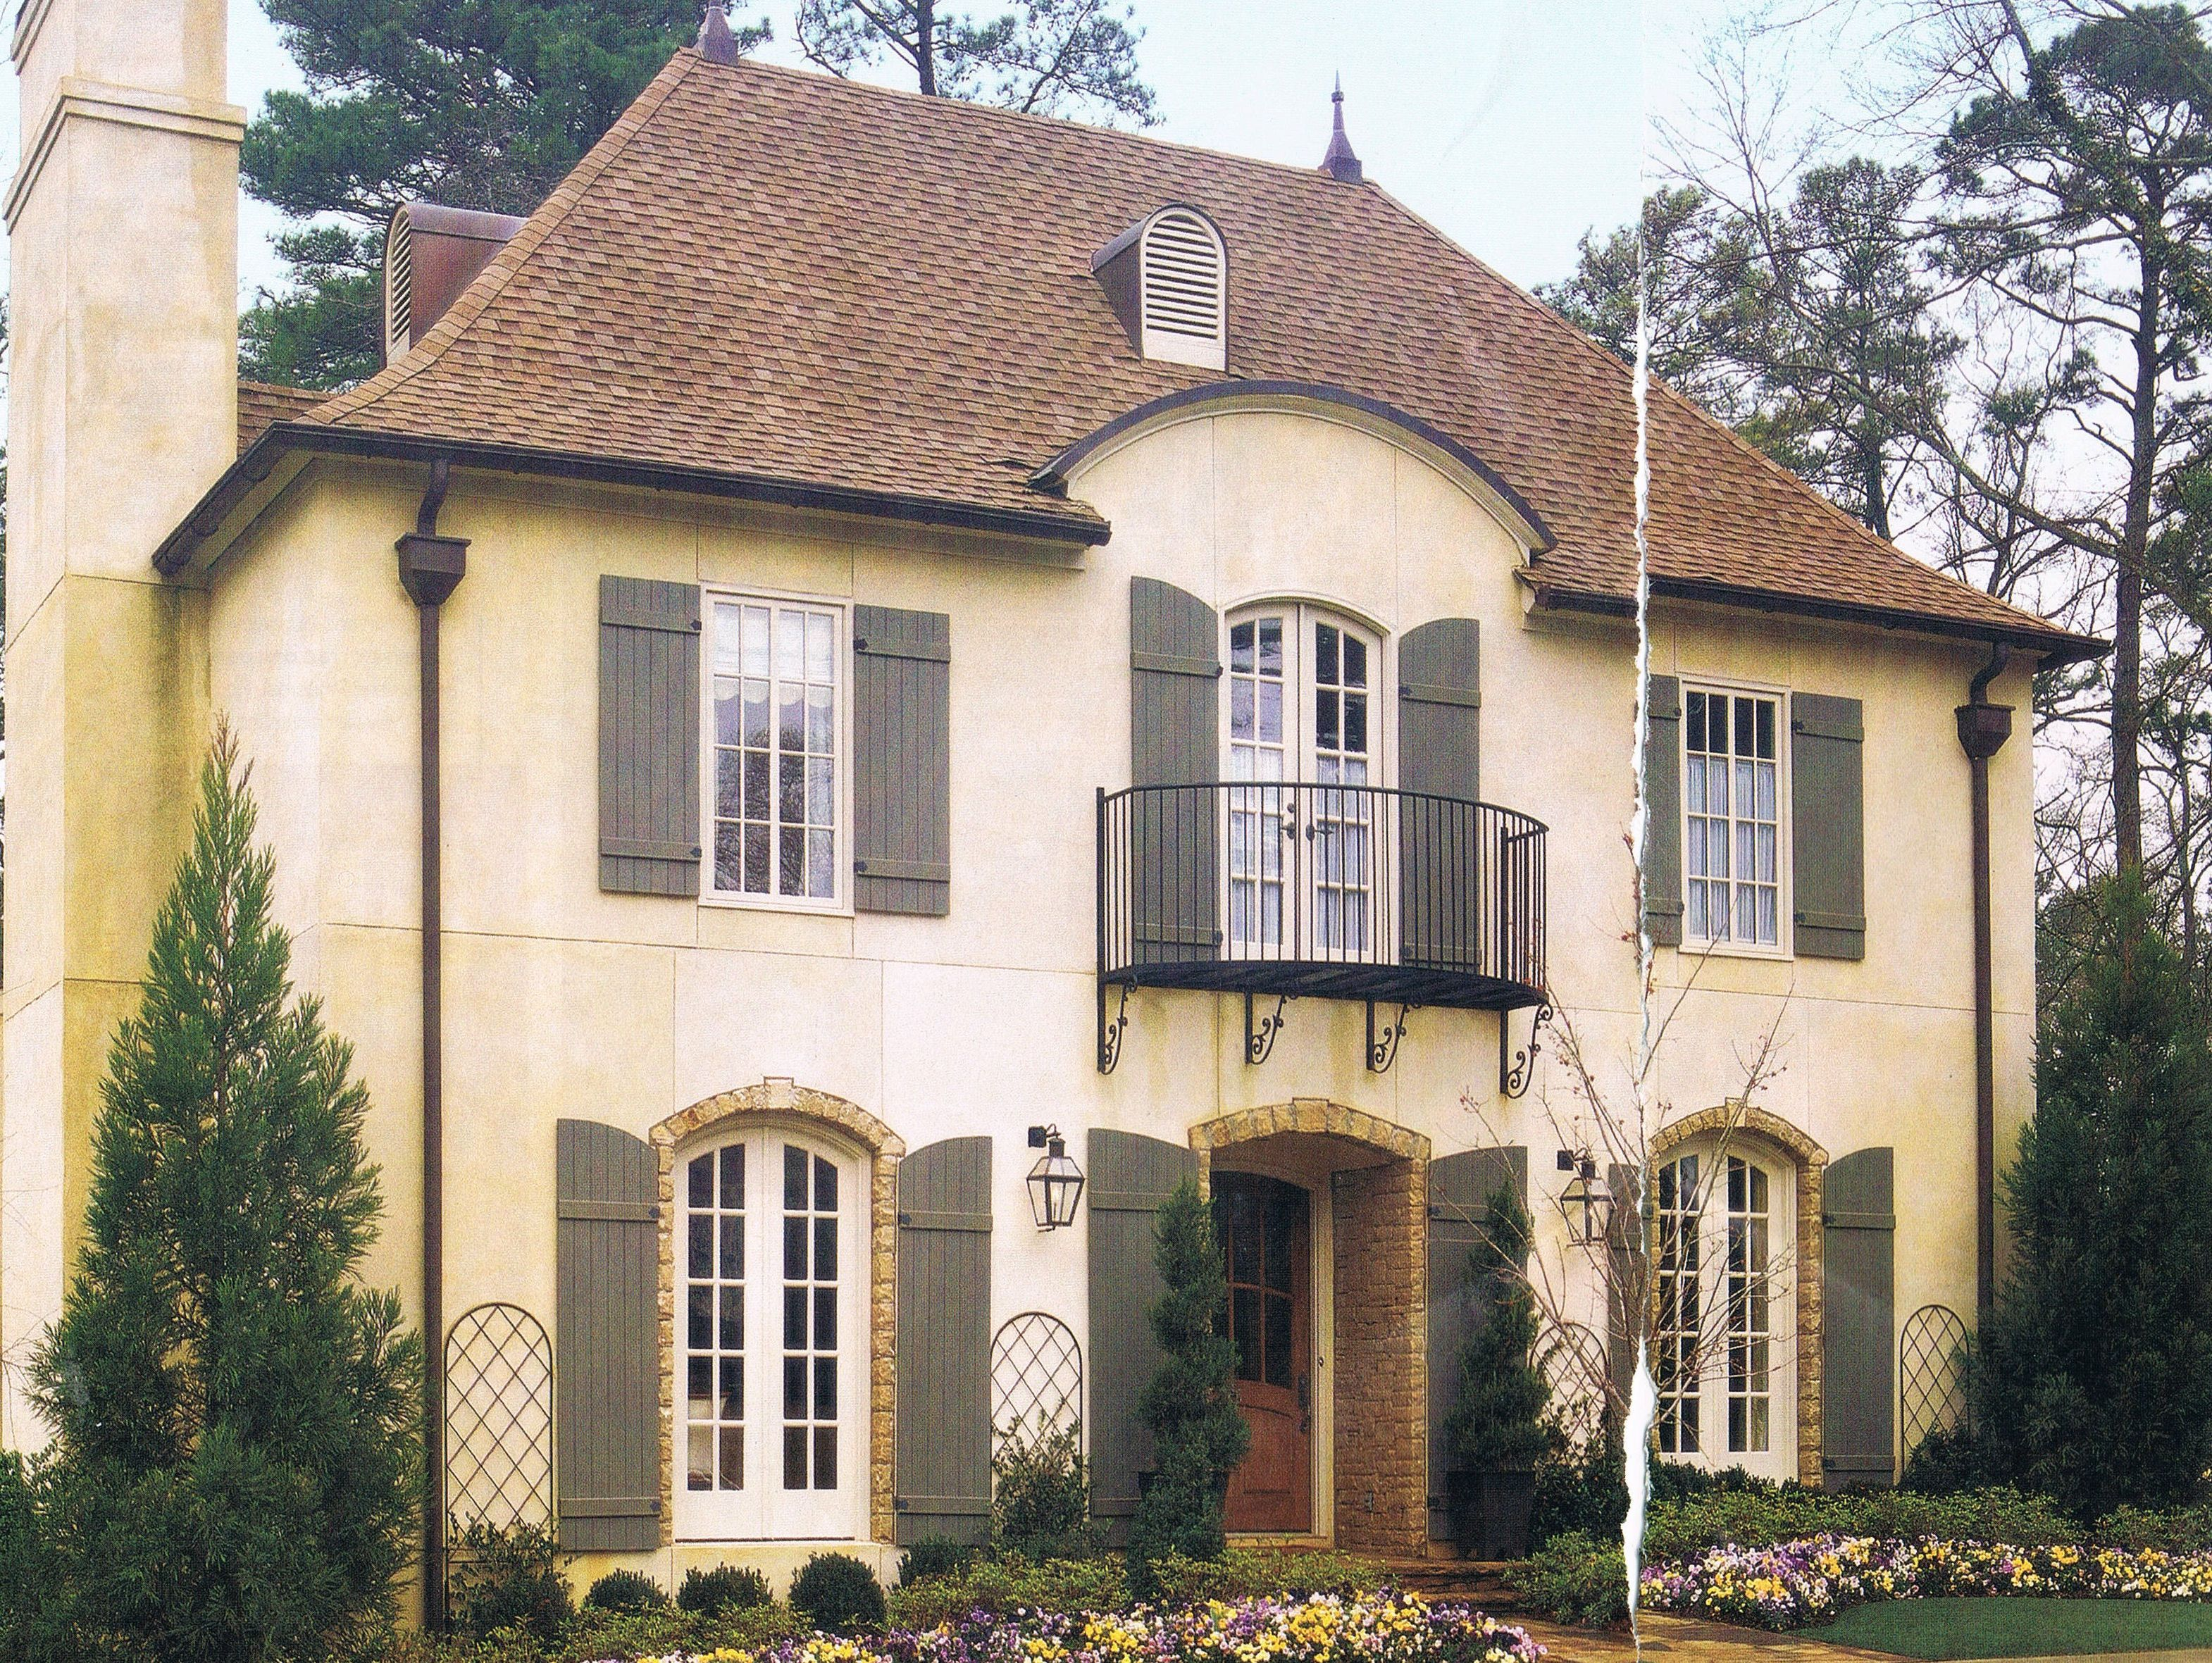 French Provincial Architectural Styles French Country French Style Homes